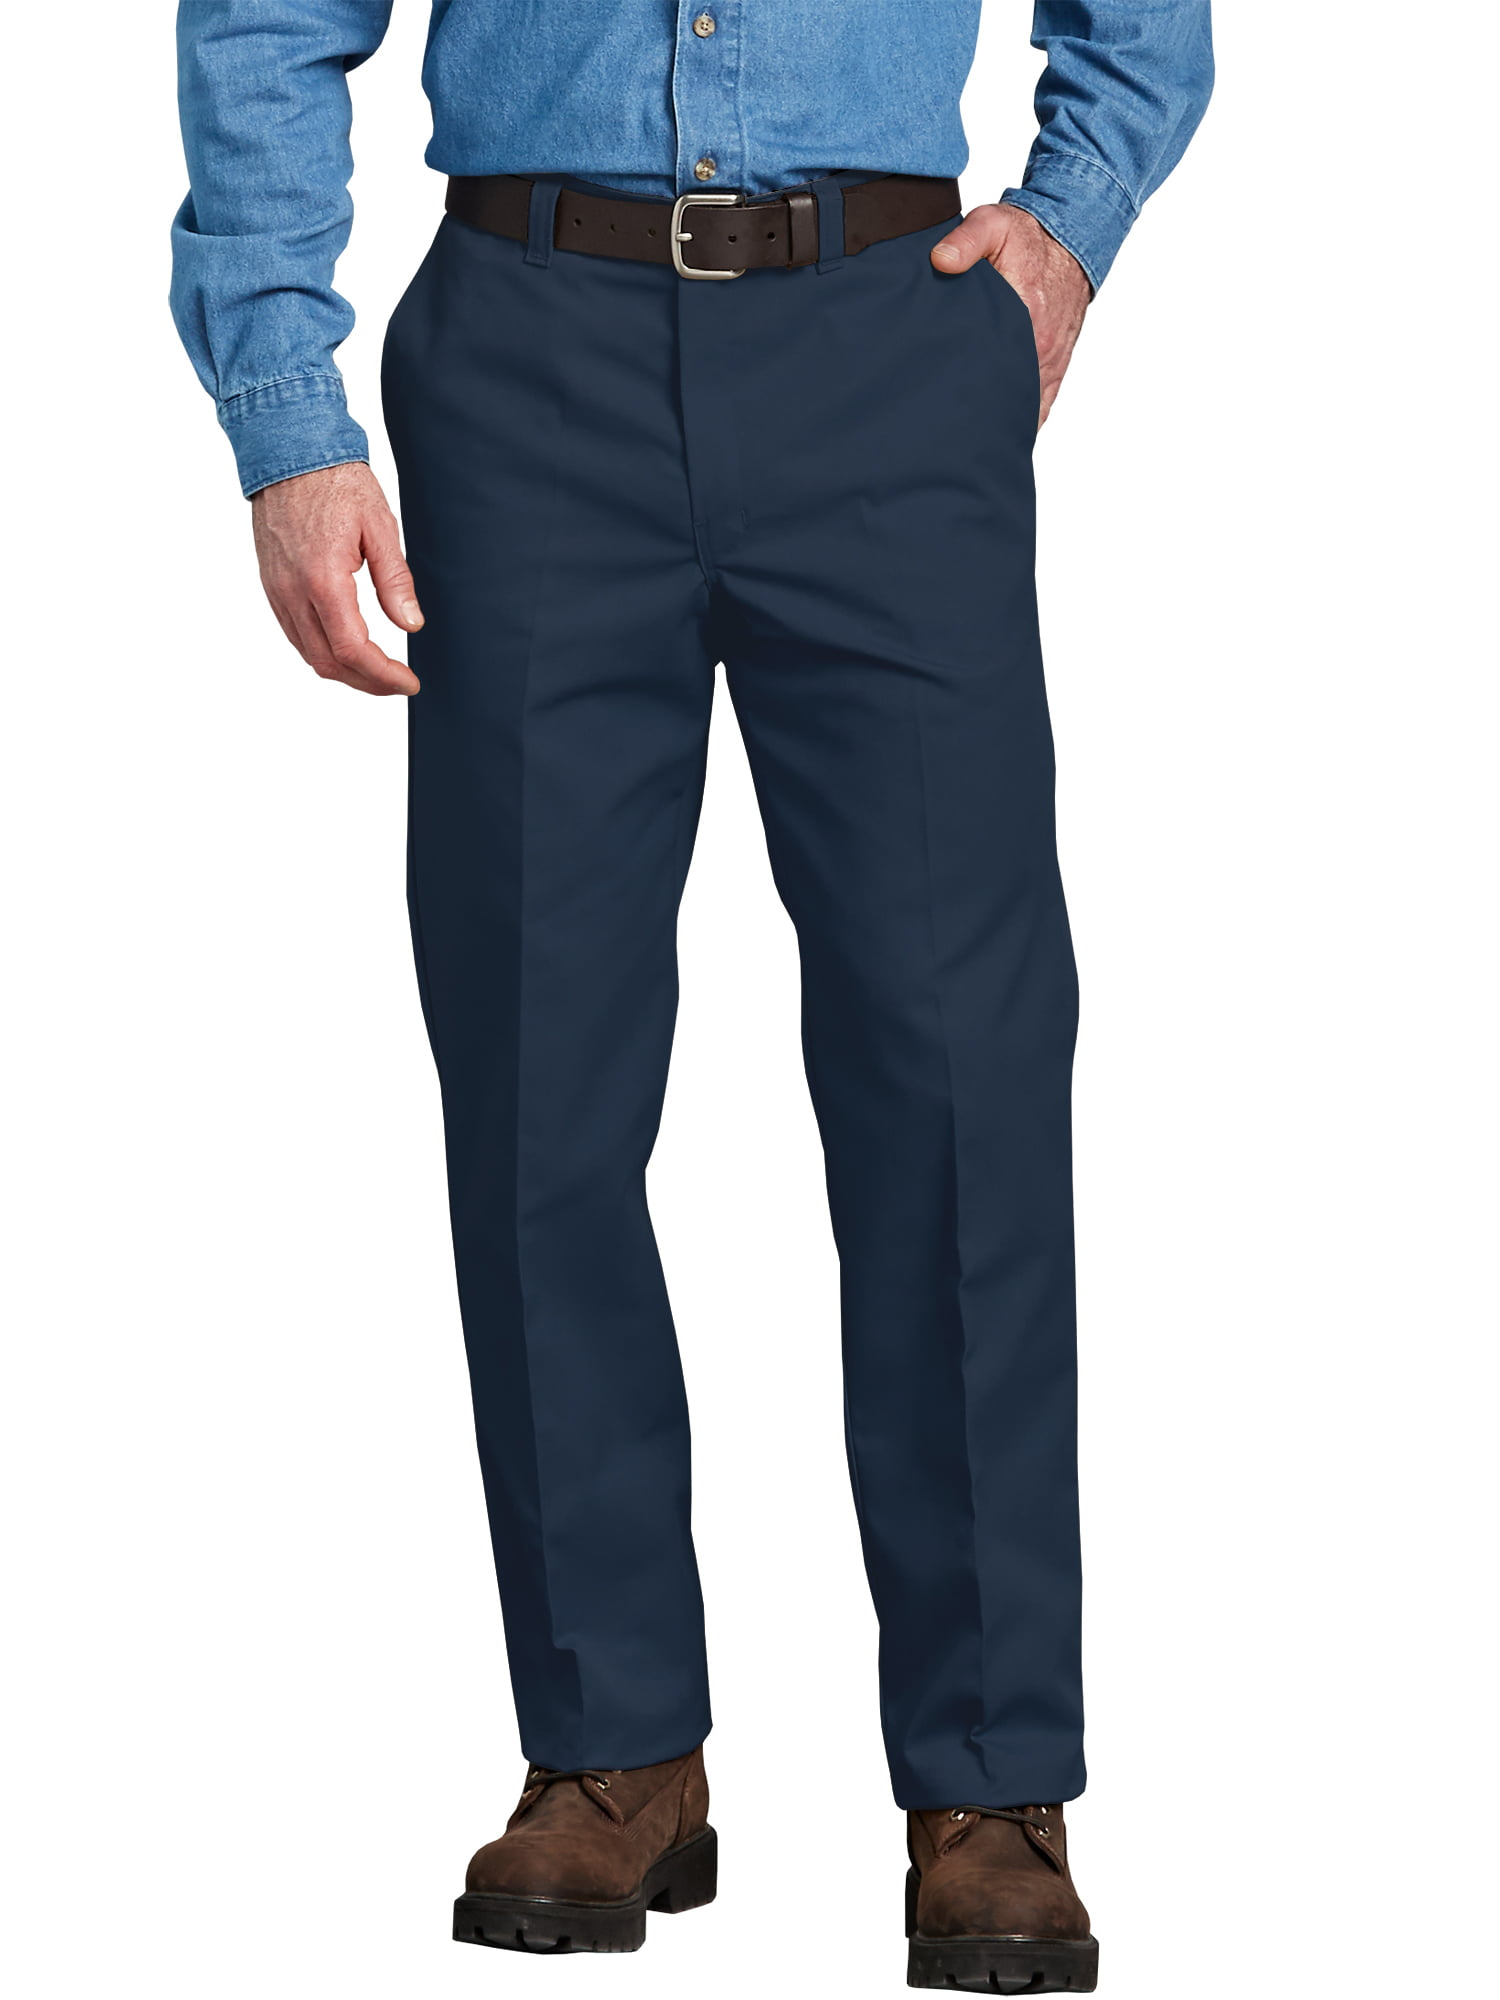 814cefd48 Genuine Dickies - Men s Regular Fit Flat Front Pant - Walmart.com